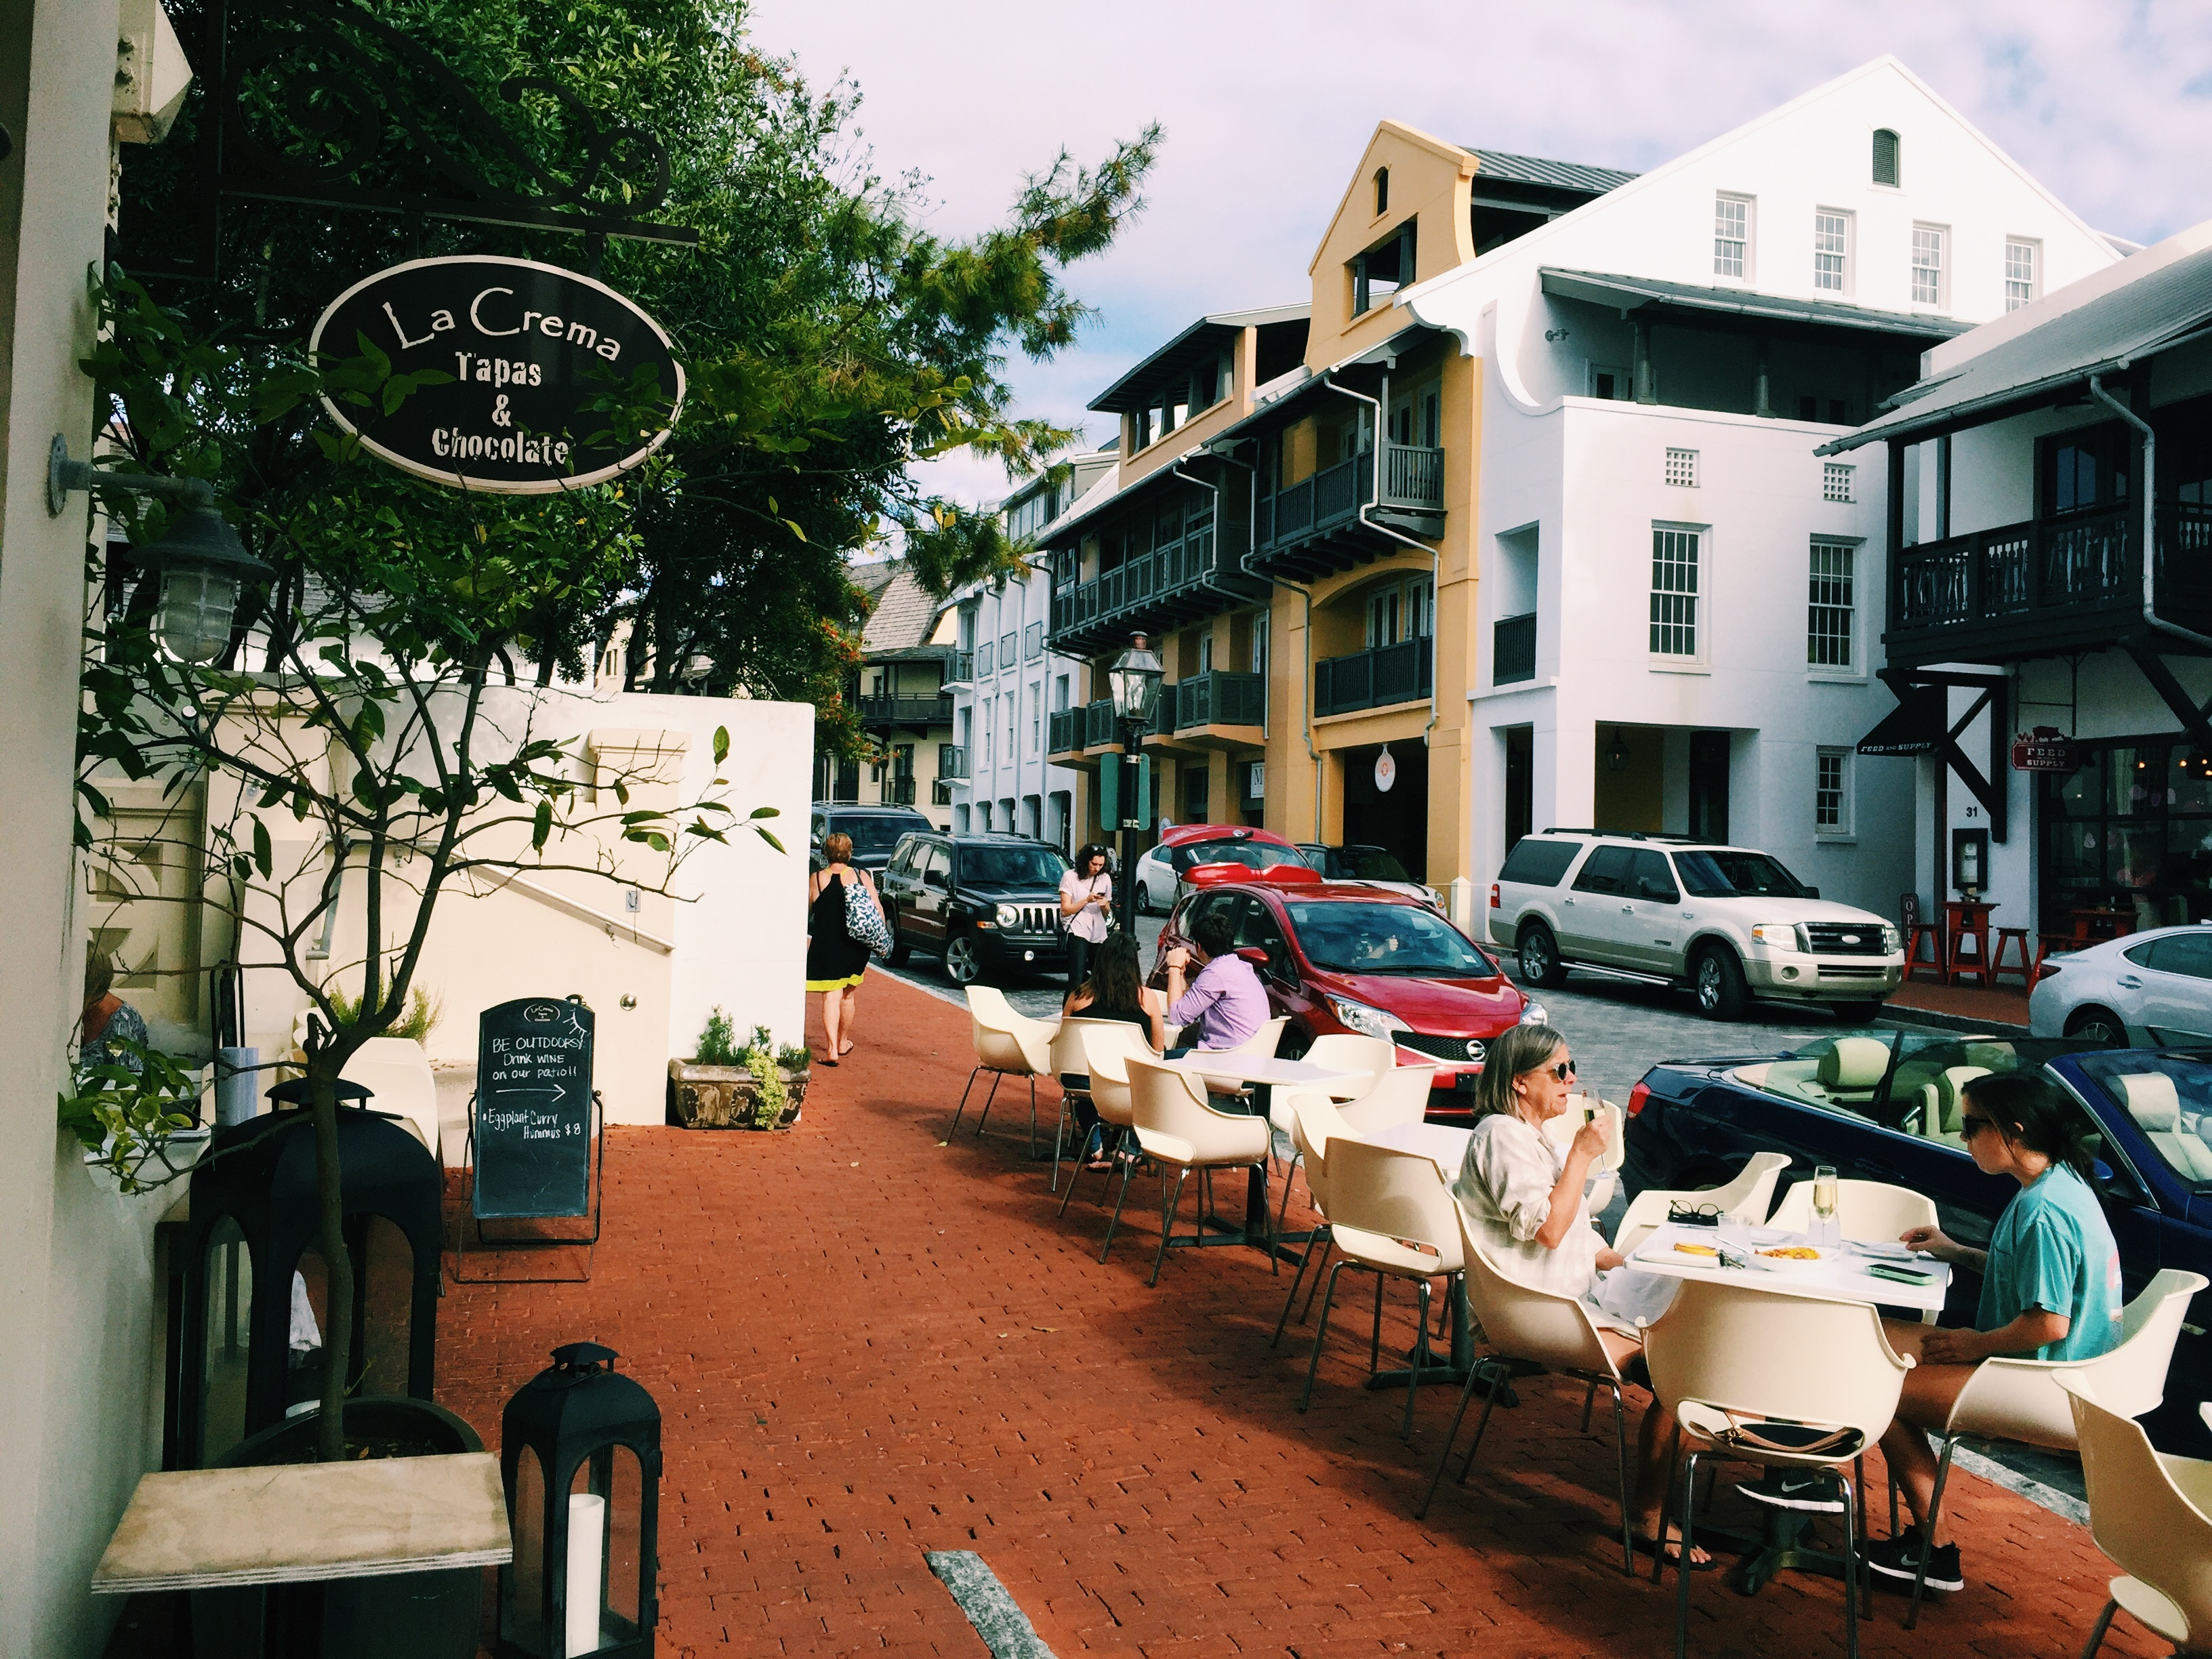 Hidden Gems Of Florida La Crema Tapas In Rosemary Beach